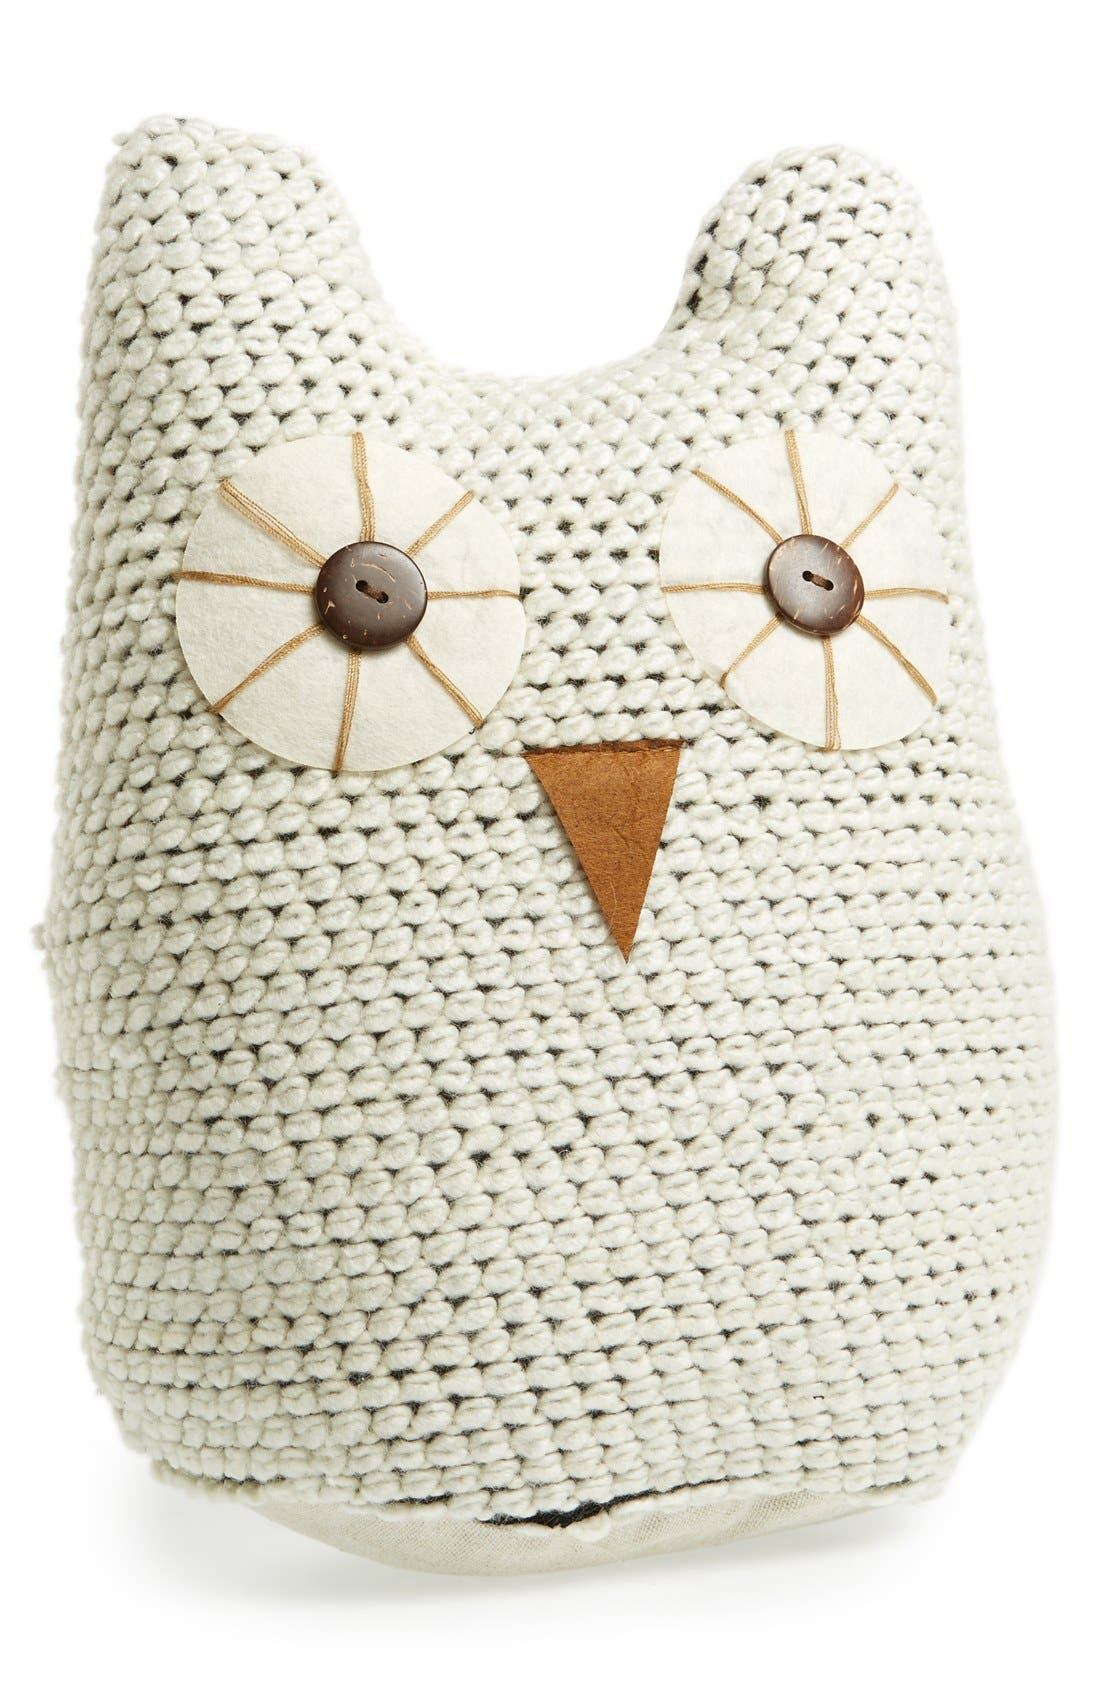 Main Image - Levtex Knit Owl Accent Pillow